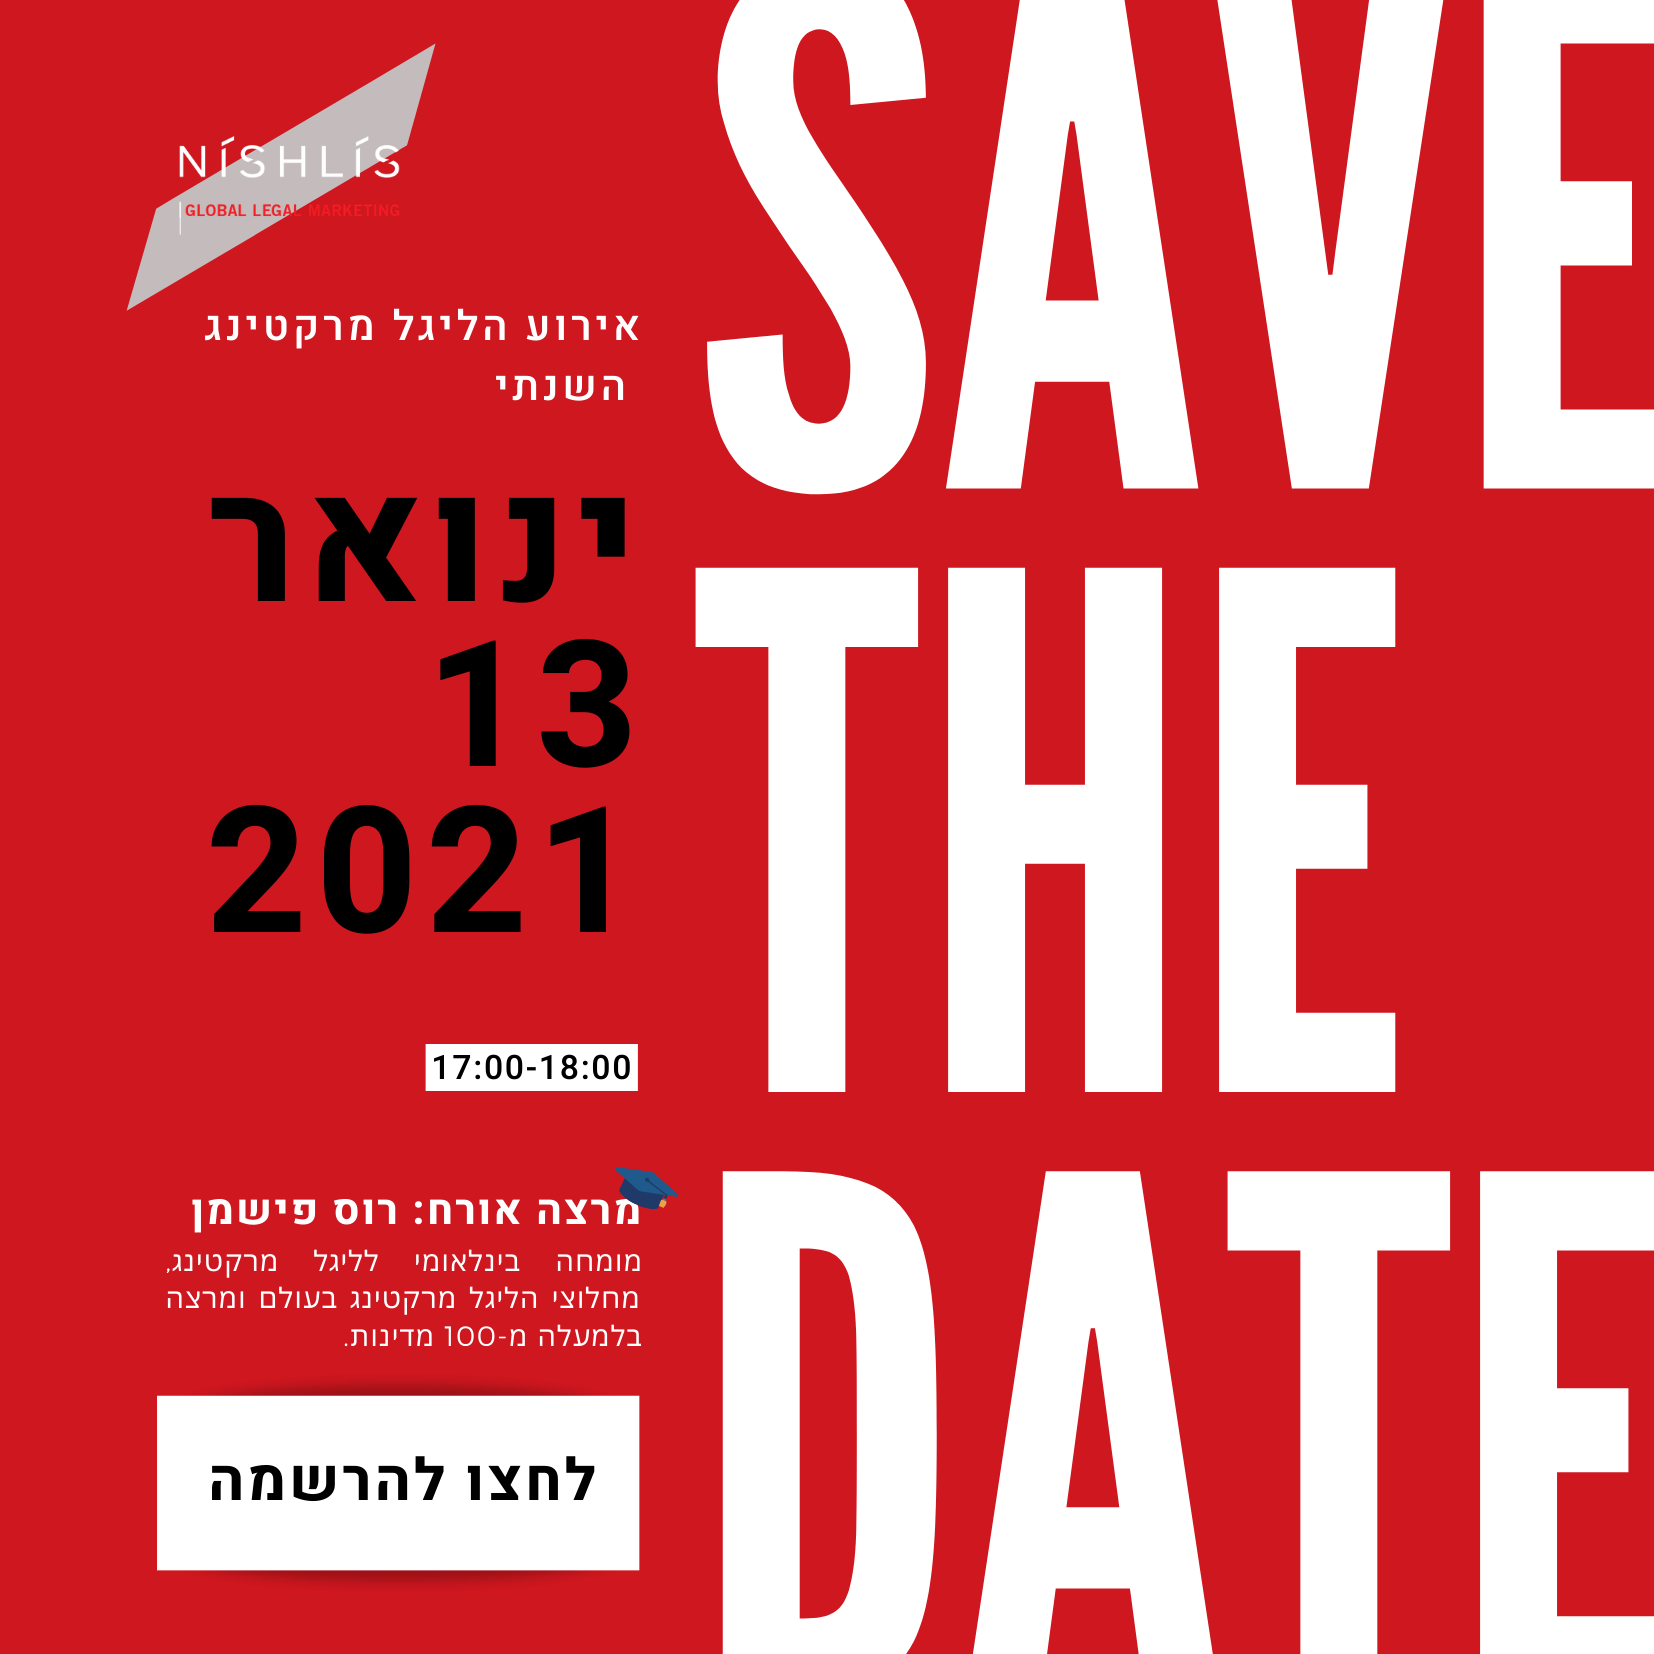 Nishlis Legal Marketing's Annual Legal Marketing Event 2021 – Save the Date